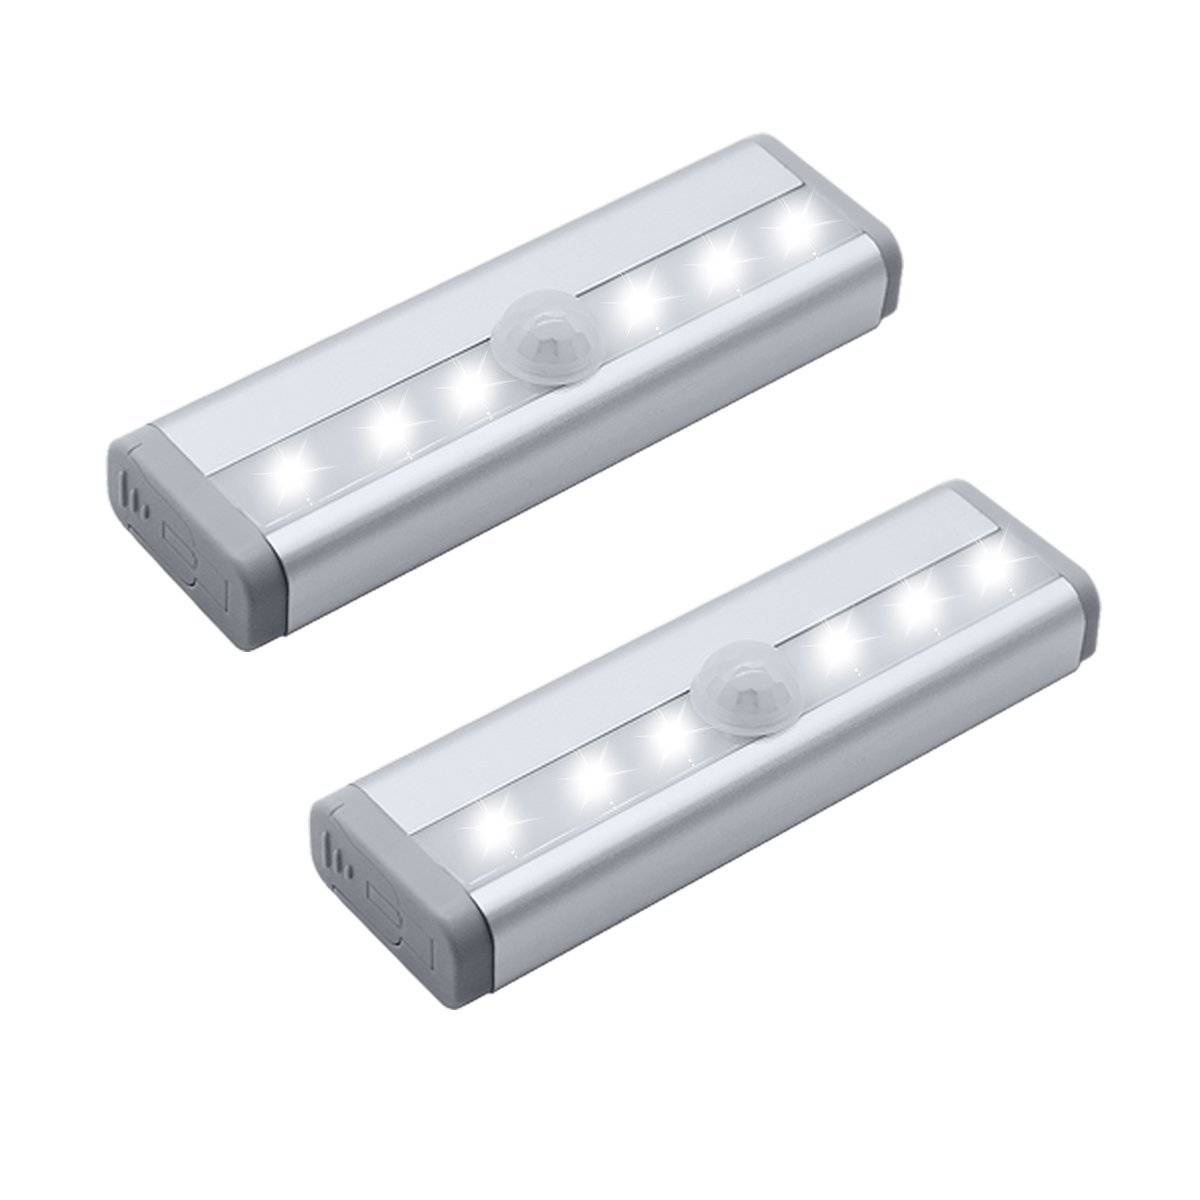 OHSMA Closet Lights 6 LEDs Mini Size Motion Sensor Night Light Wall Cabinets Lighting Closet Drawer Stairs Step with Security Light Bed Lights, Battery Powered(2-Pack)